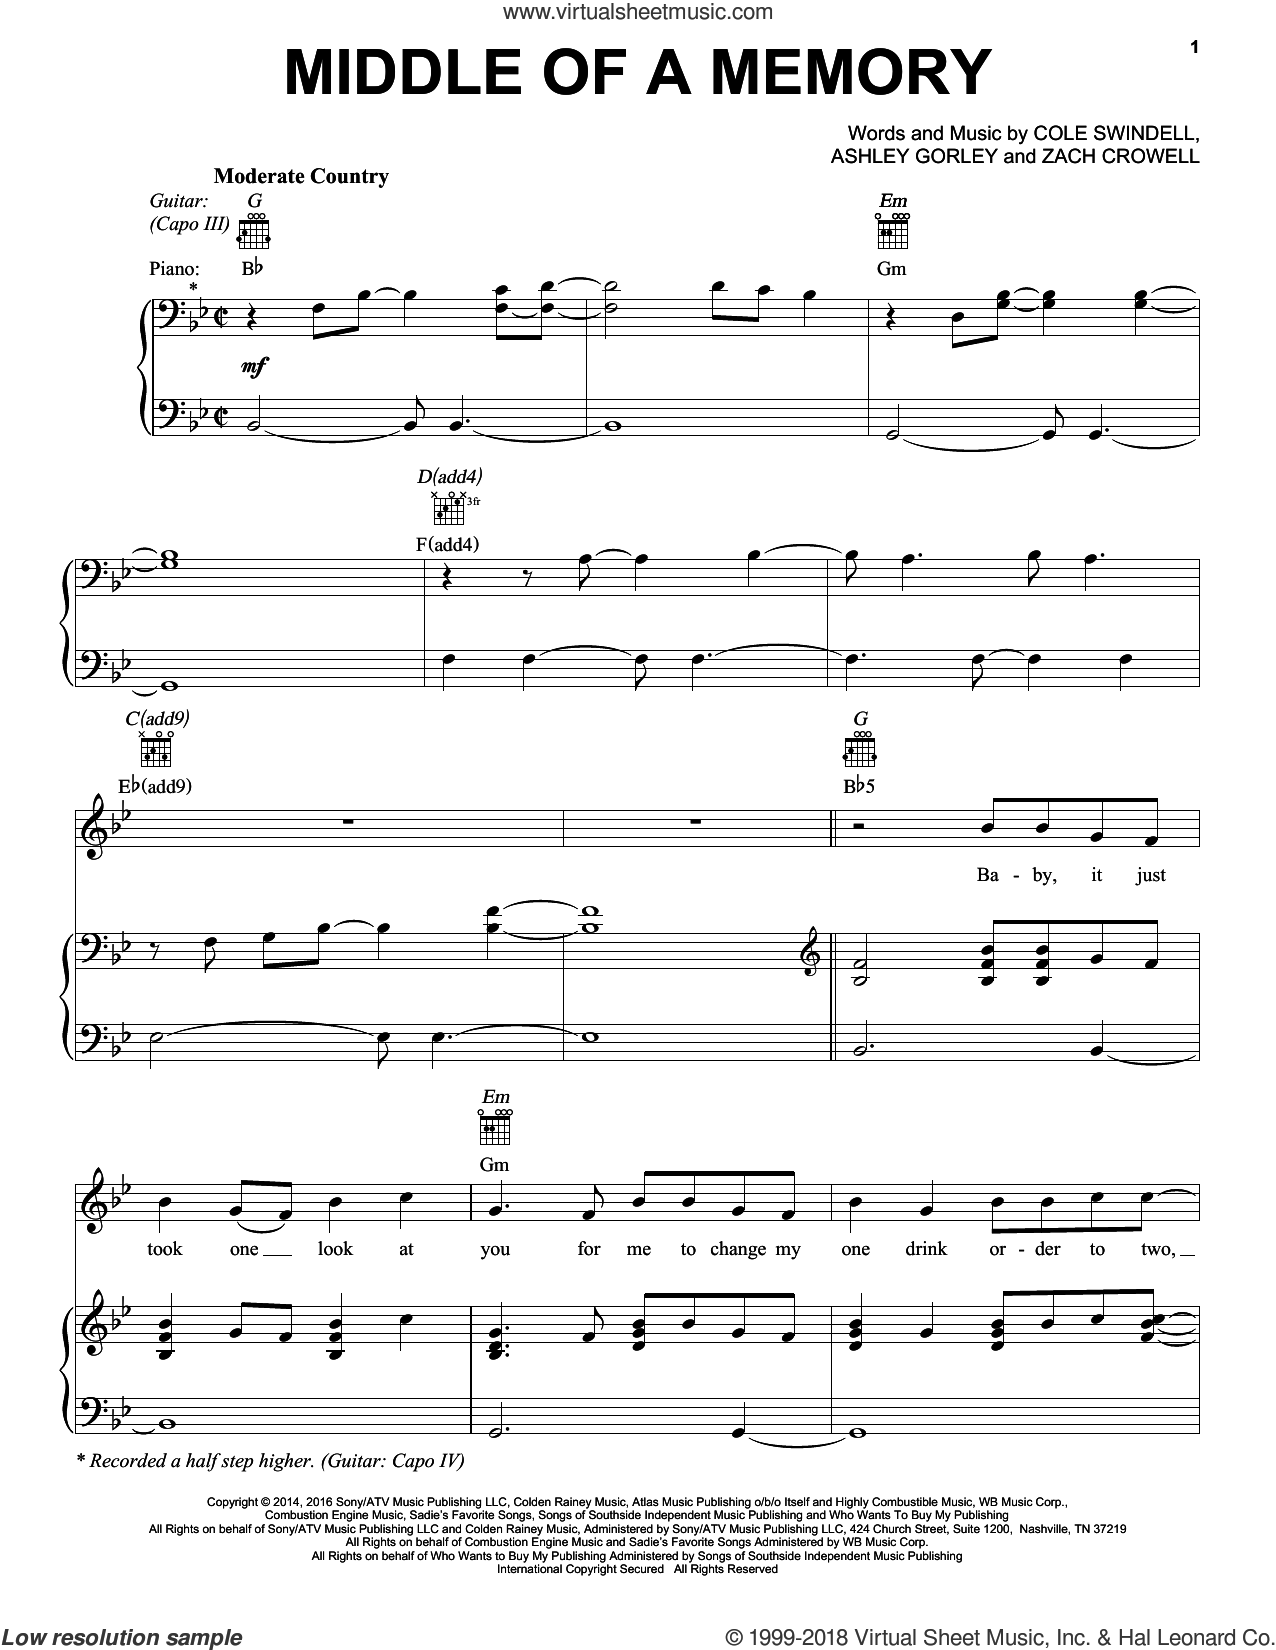 Middle Of A Memory sheet music for voice, piano or guitar by Cole Swindell, Ashley Gorley and Zach Crowell, intermediate skill level